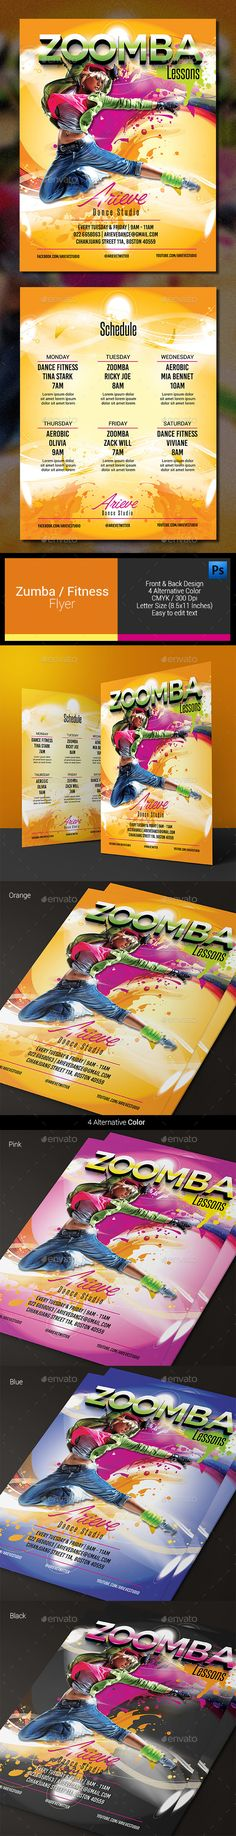 Zumba / Fitness Flyer by arifpoernomo Zumba / Fitness Flyer Template, can be used for promote your Zumba Lessons, Fitness, etc. File features : Letter Size (8.511 I